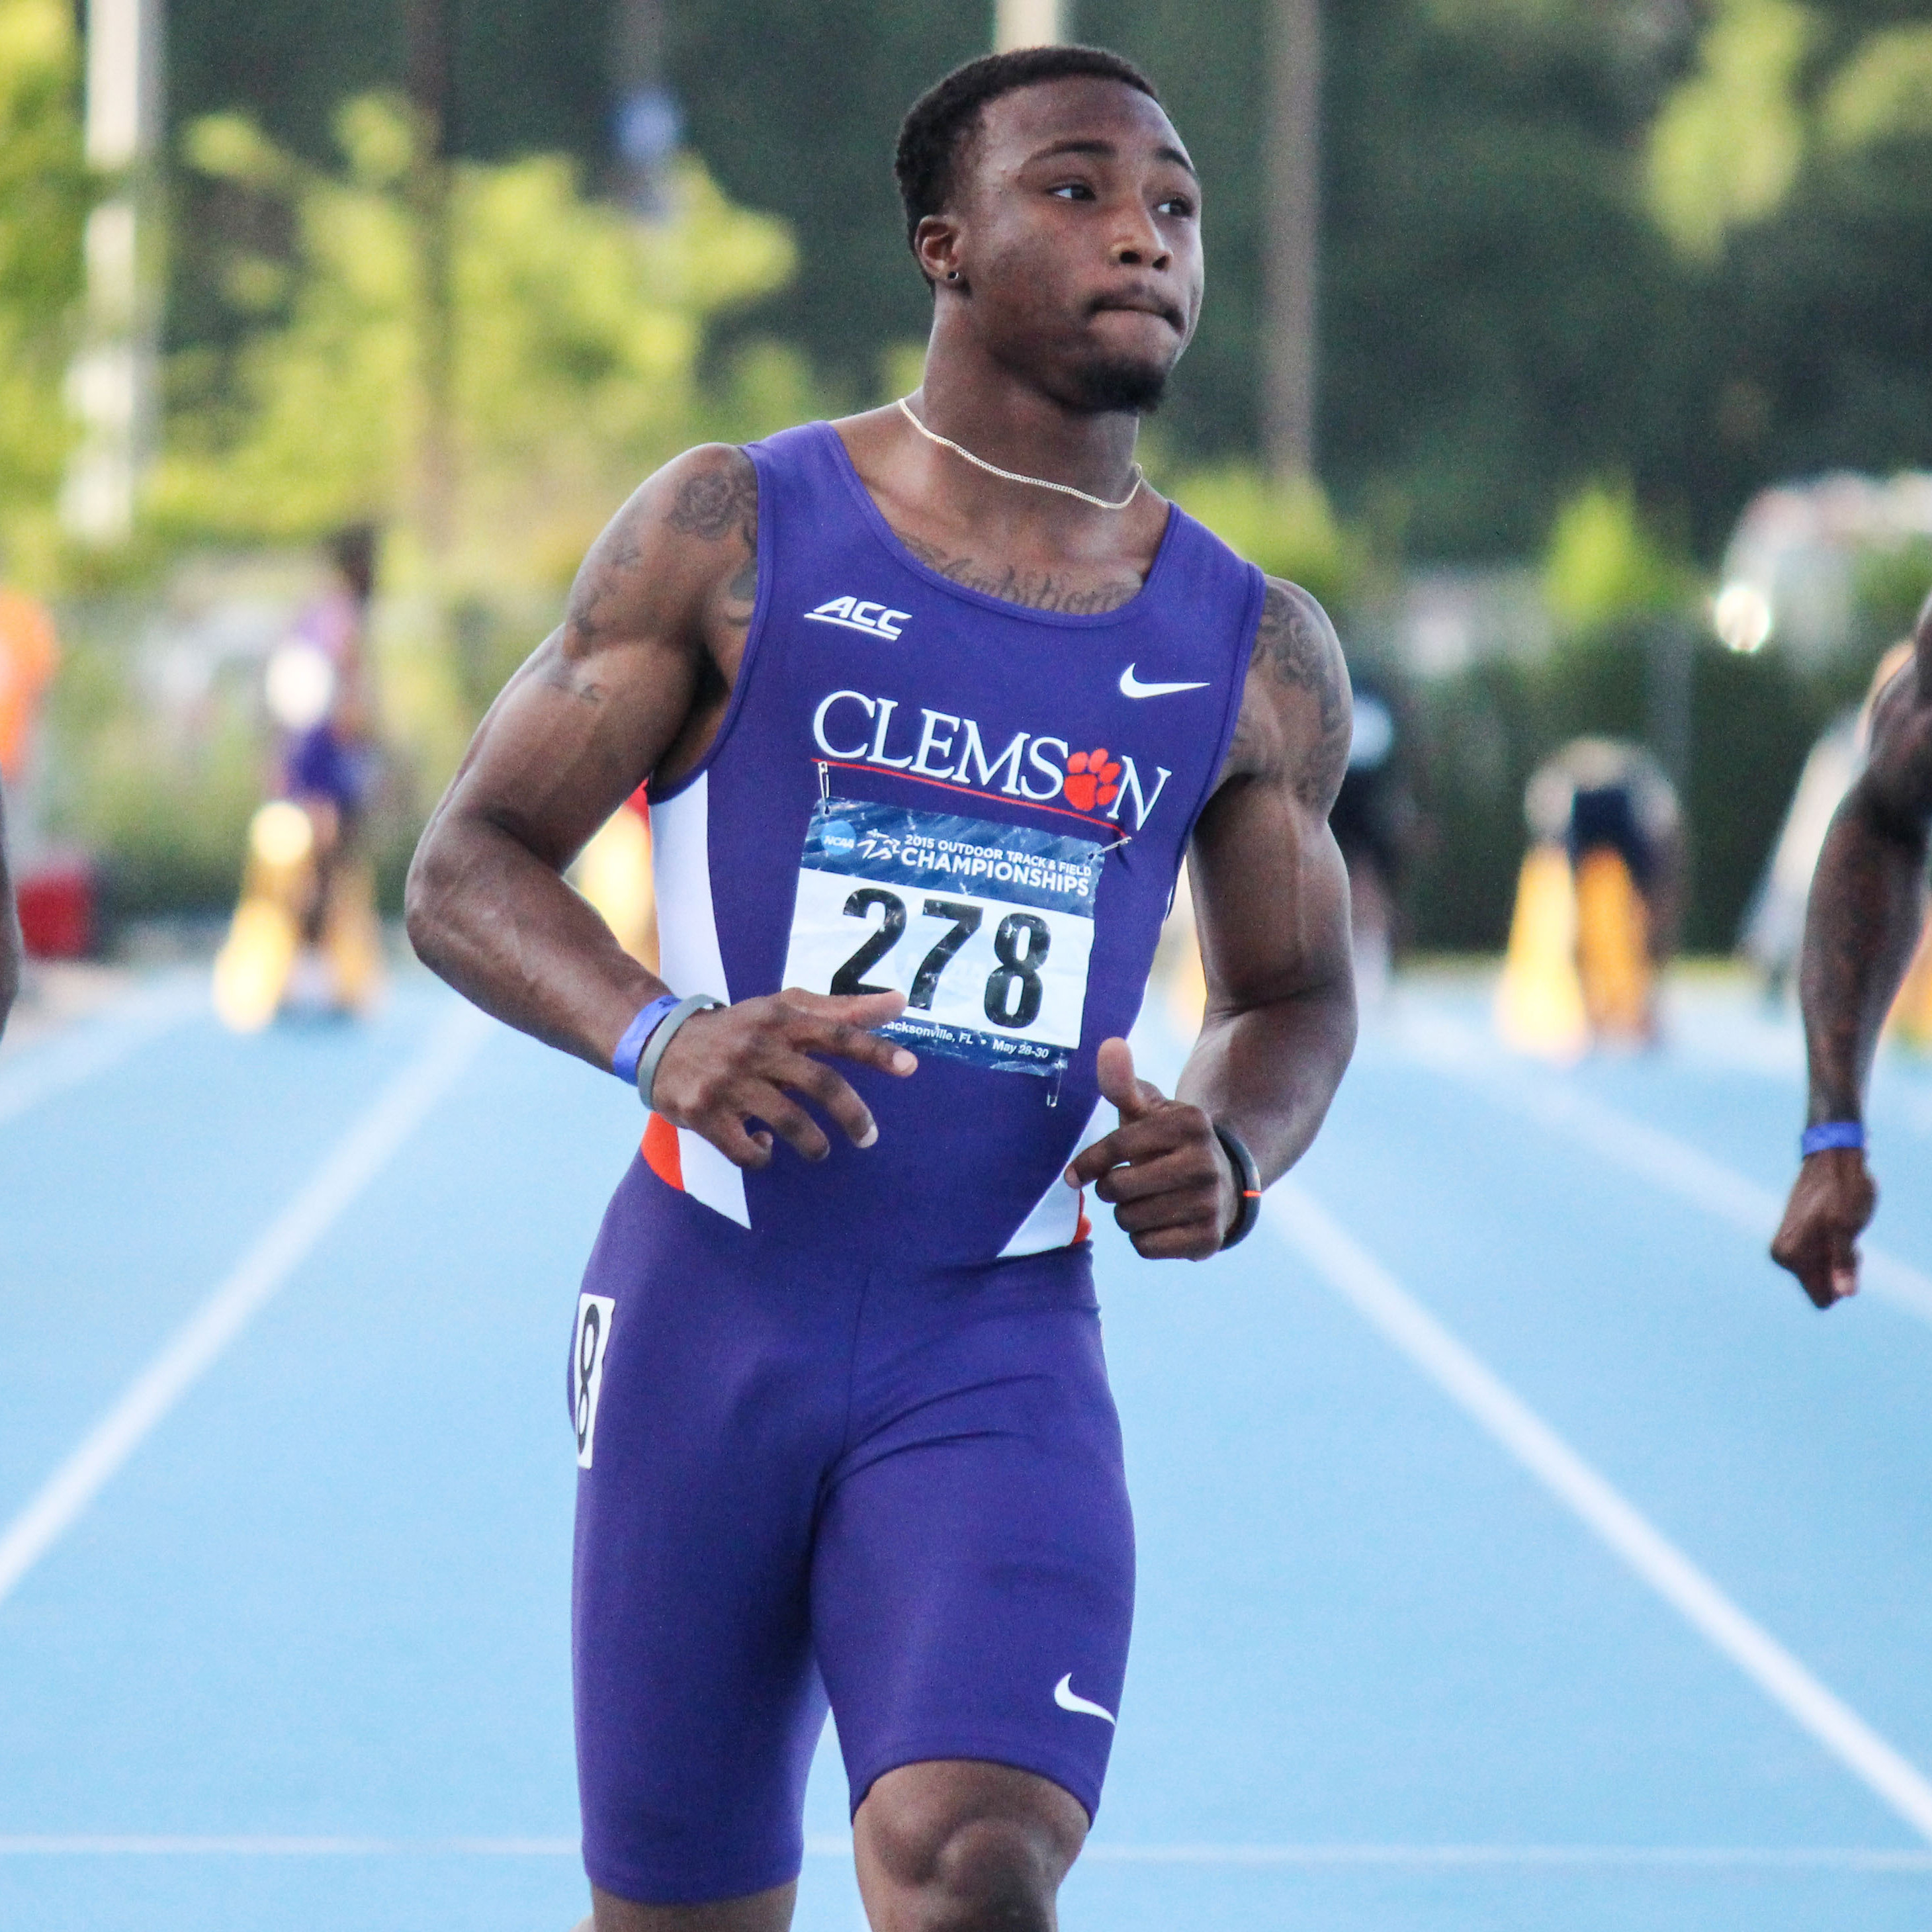 Hester Sets Facility Mark at East Prelims